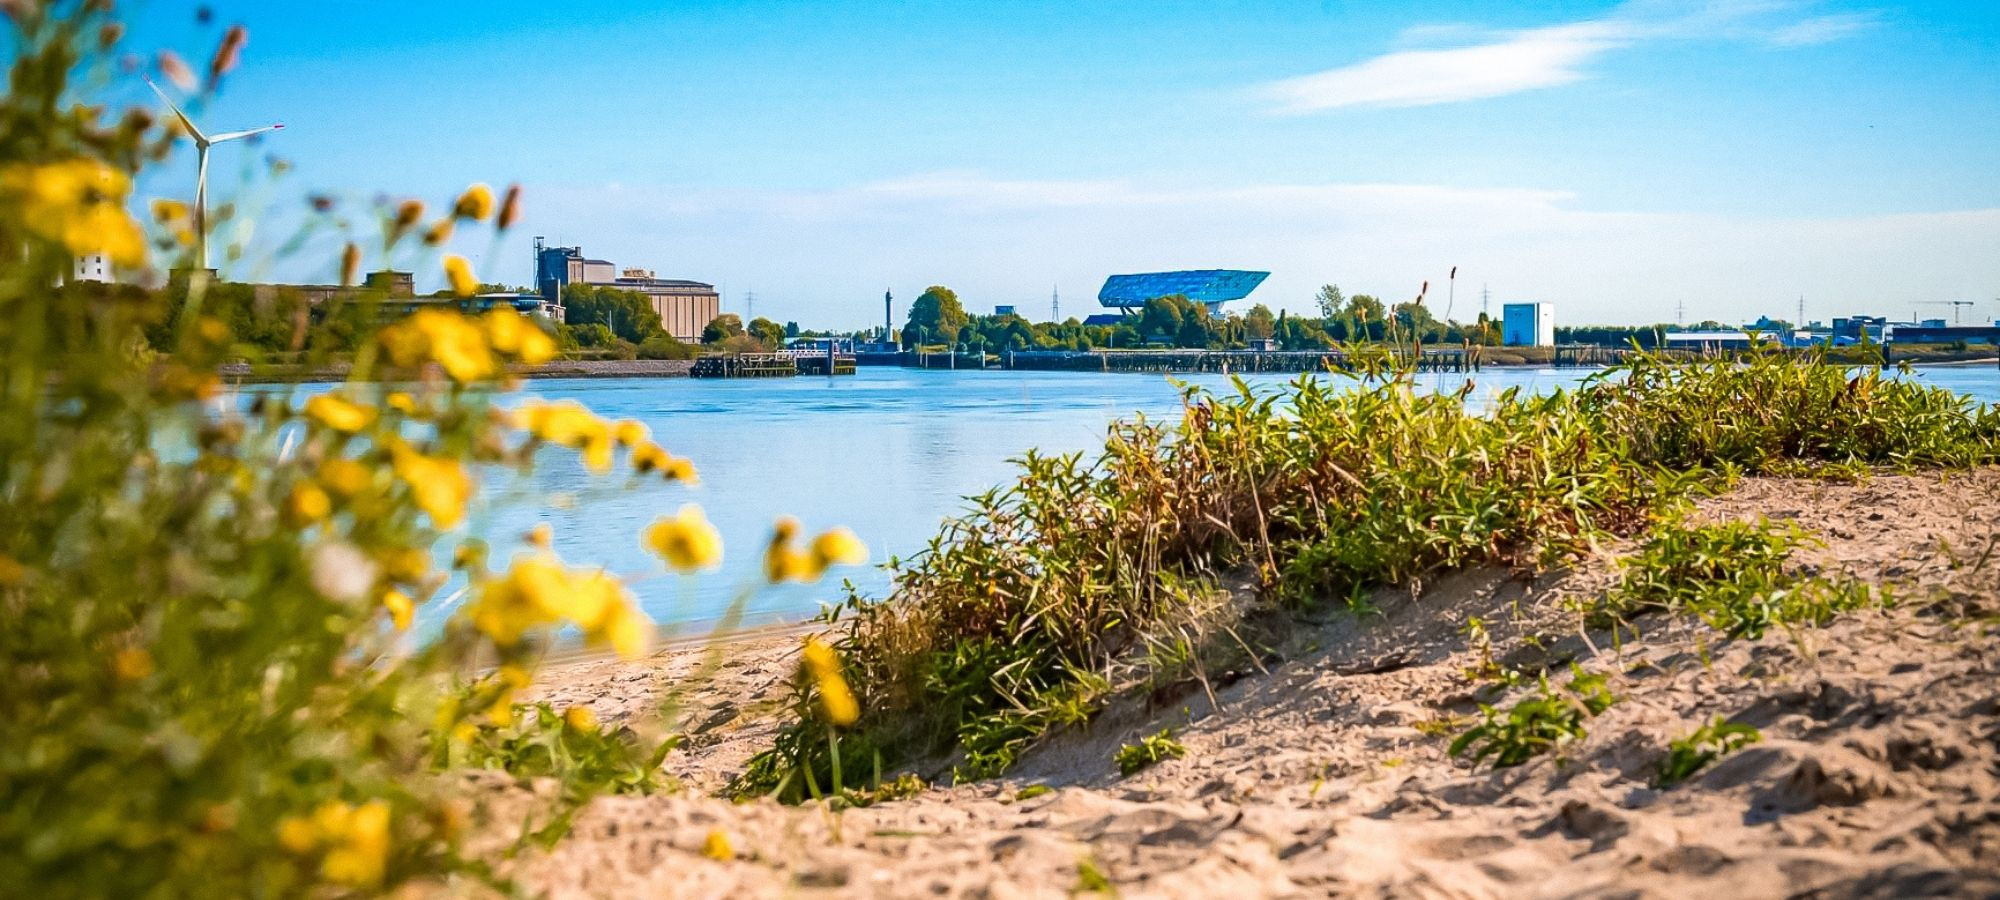 Small stretch of sandy beach, grass and yellow flowers. Across the river is the diamond Port House, Sint Annastrand, Antwerp